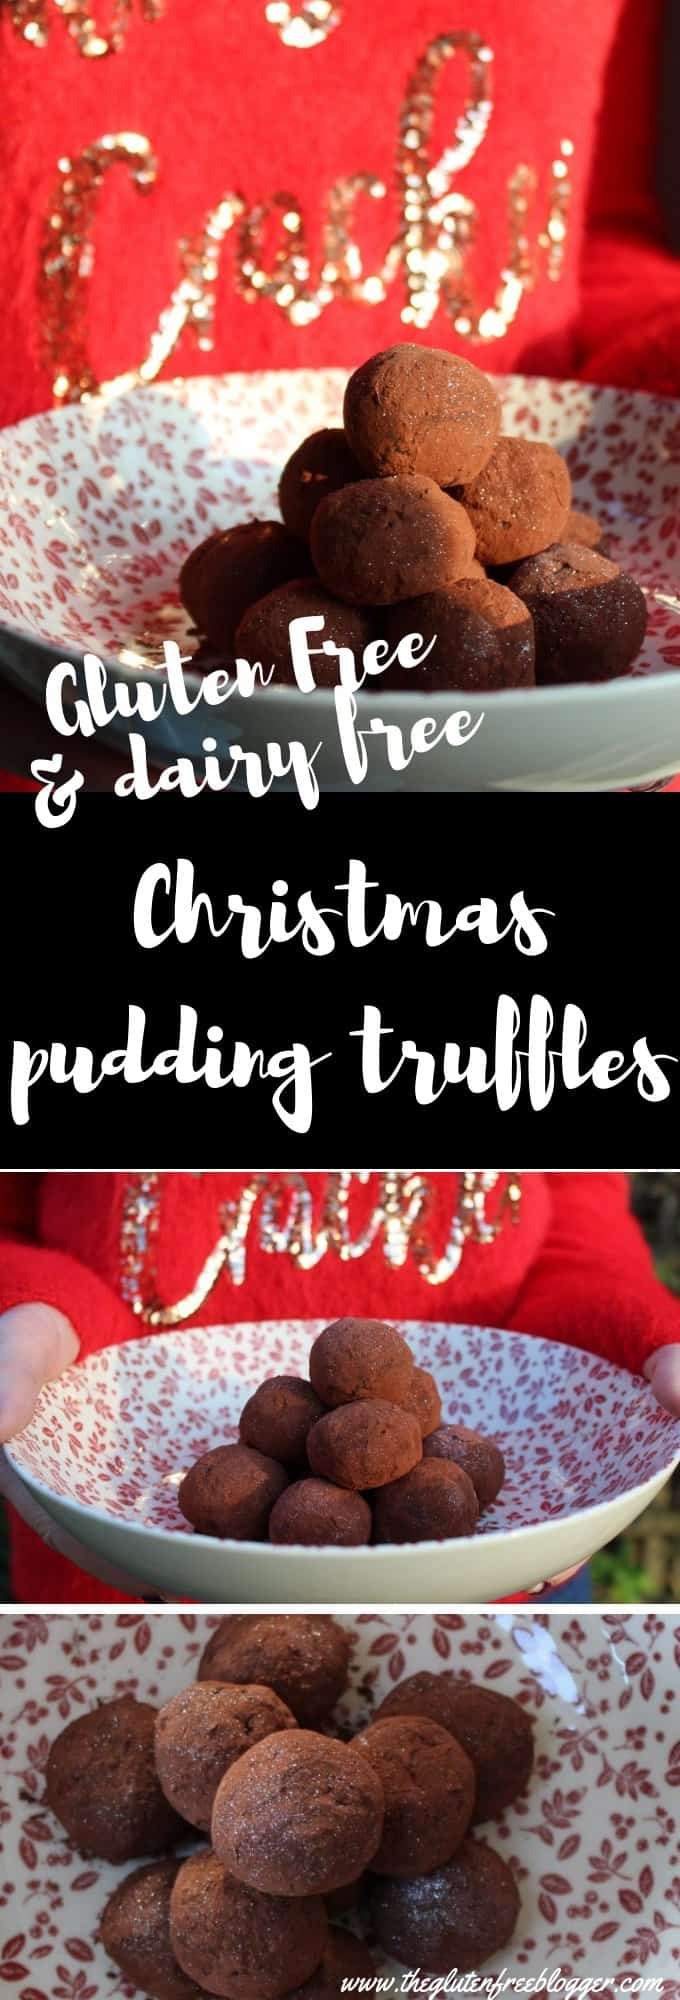 gluten free dairy free christmas pudding truffles - edible christmas gifts - DIY christmas